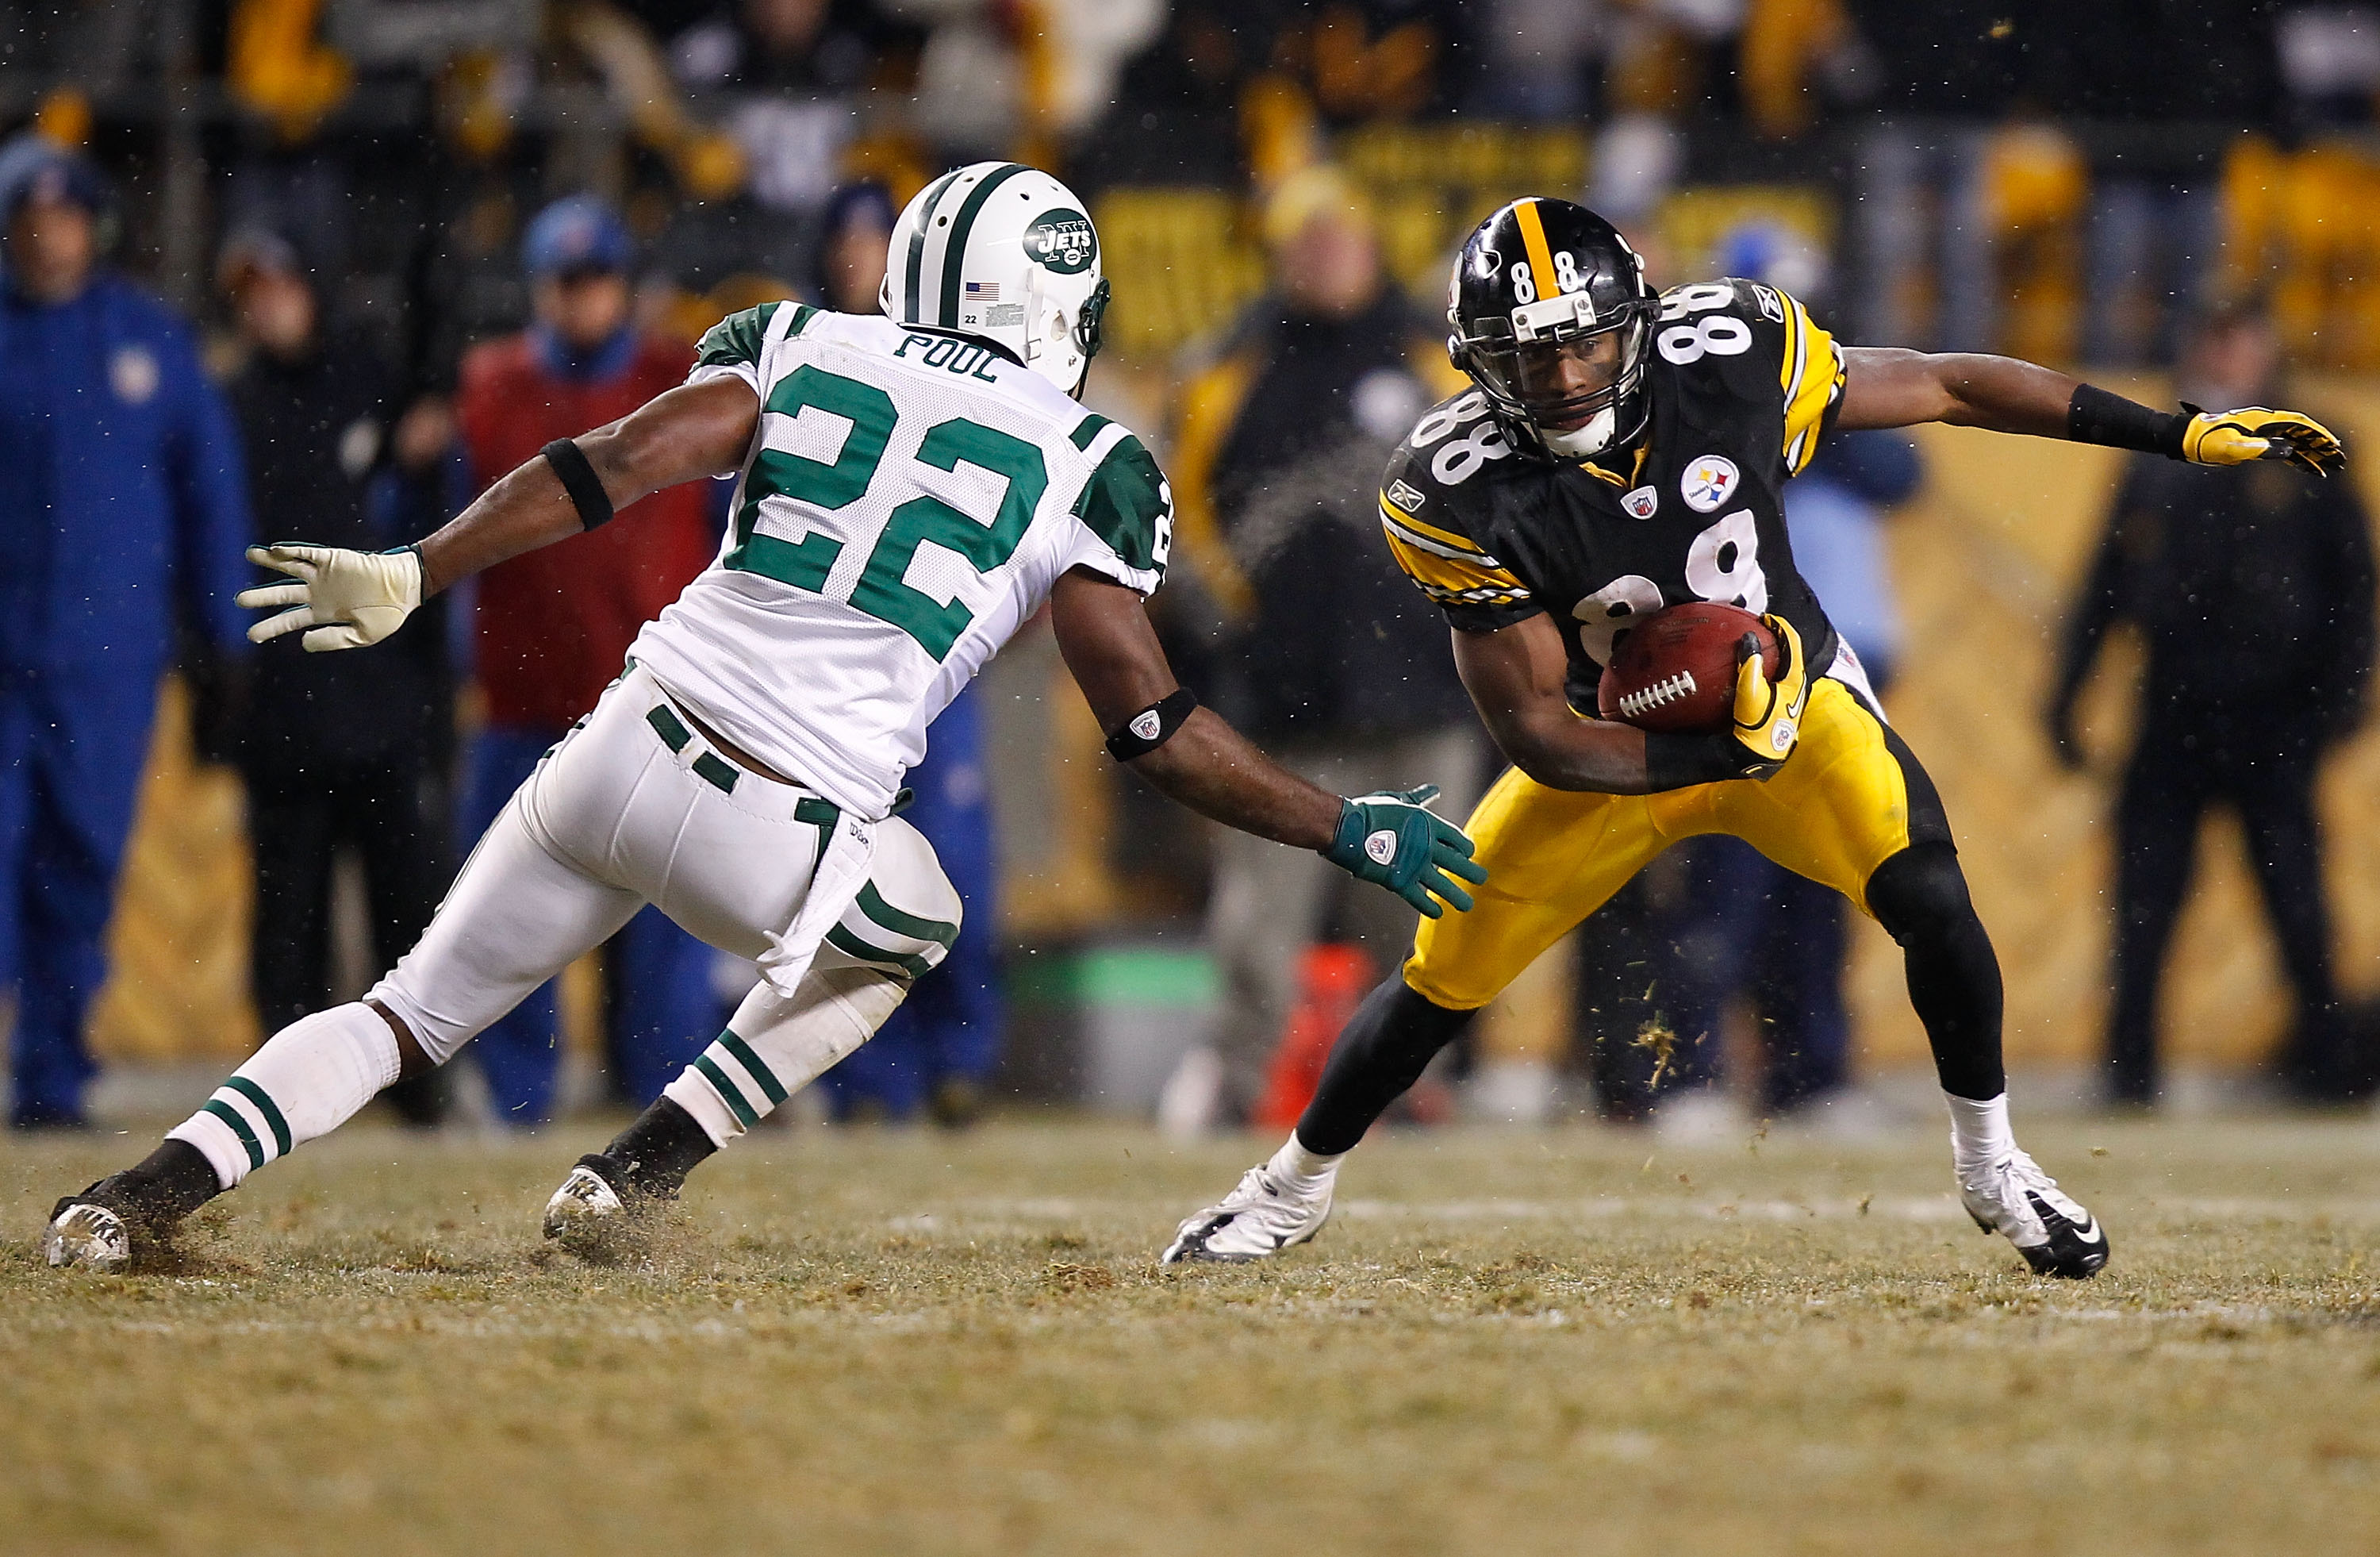 PITTSBURGH - DECEMBER 19:  Emmanuel Sanders #88 of the Pittsburgh Steelers evades a tackle by Brodney Pool #22 of the New York Jets during the game on December 19, 2010 at Heinz Field in Pittsburgh, Pennsylvania.  (Photo by Jared Wickerham/Getty Images)